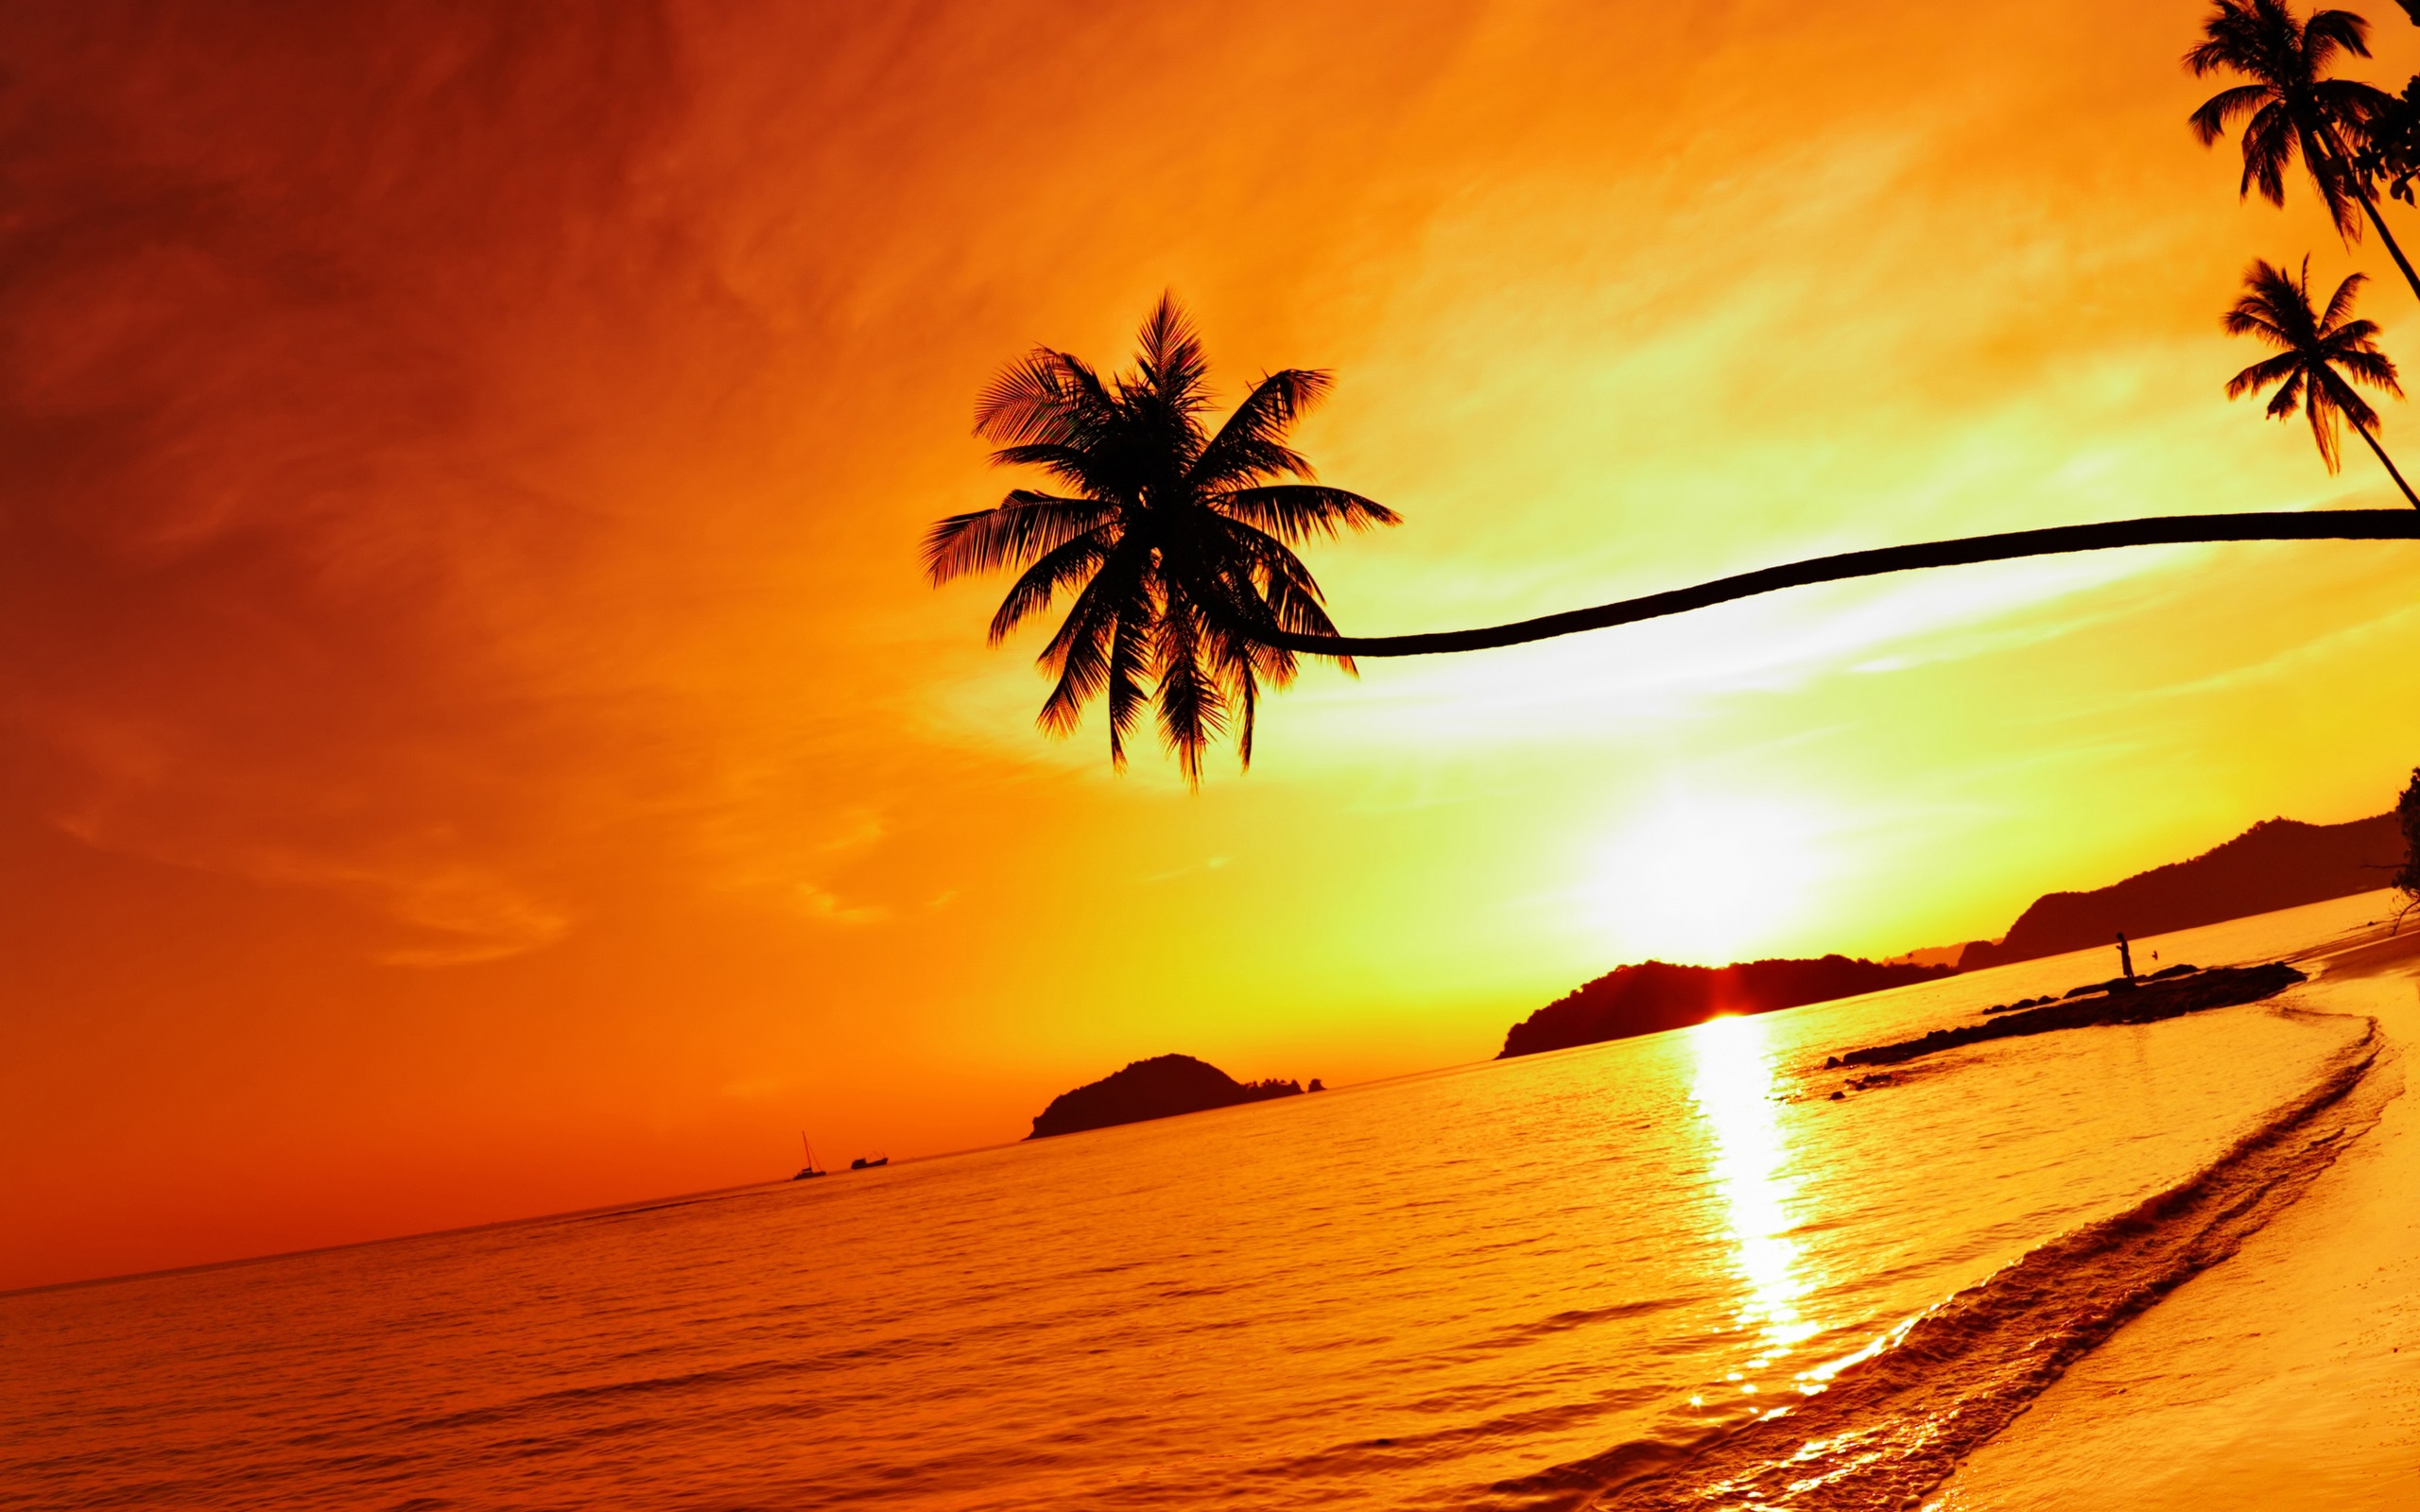 Tropical beach sunset Mak island Thailand Wallpaper HD Wallpapers 2560x1600